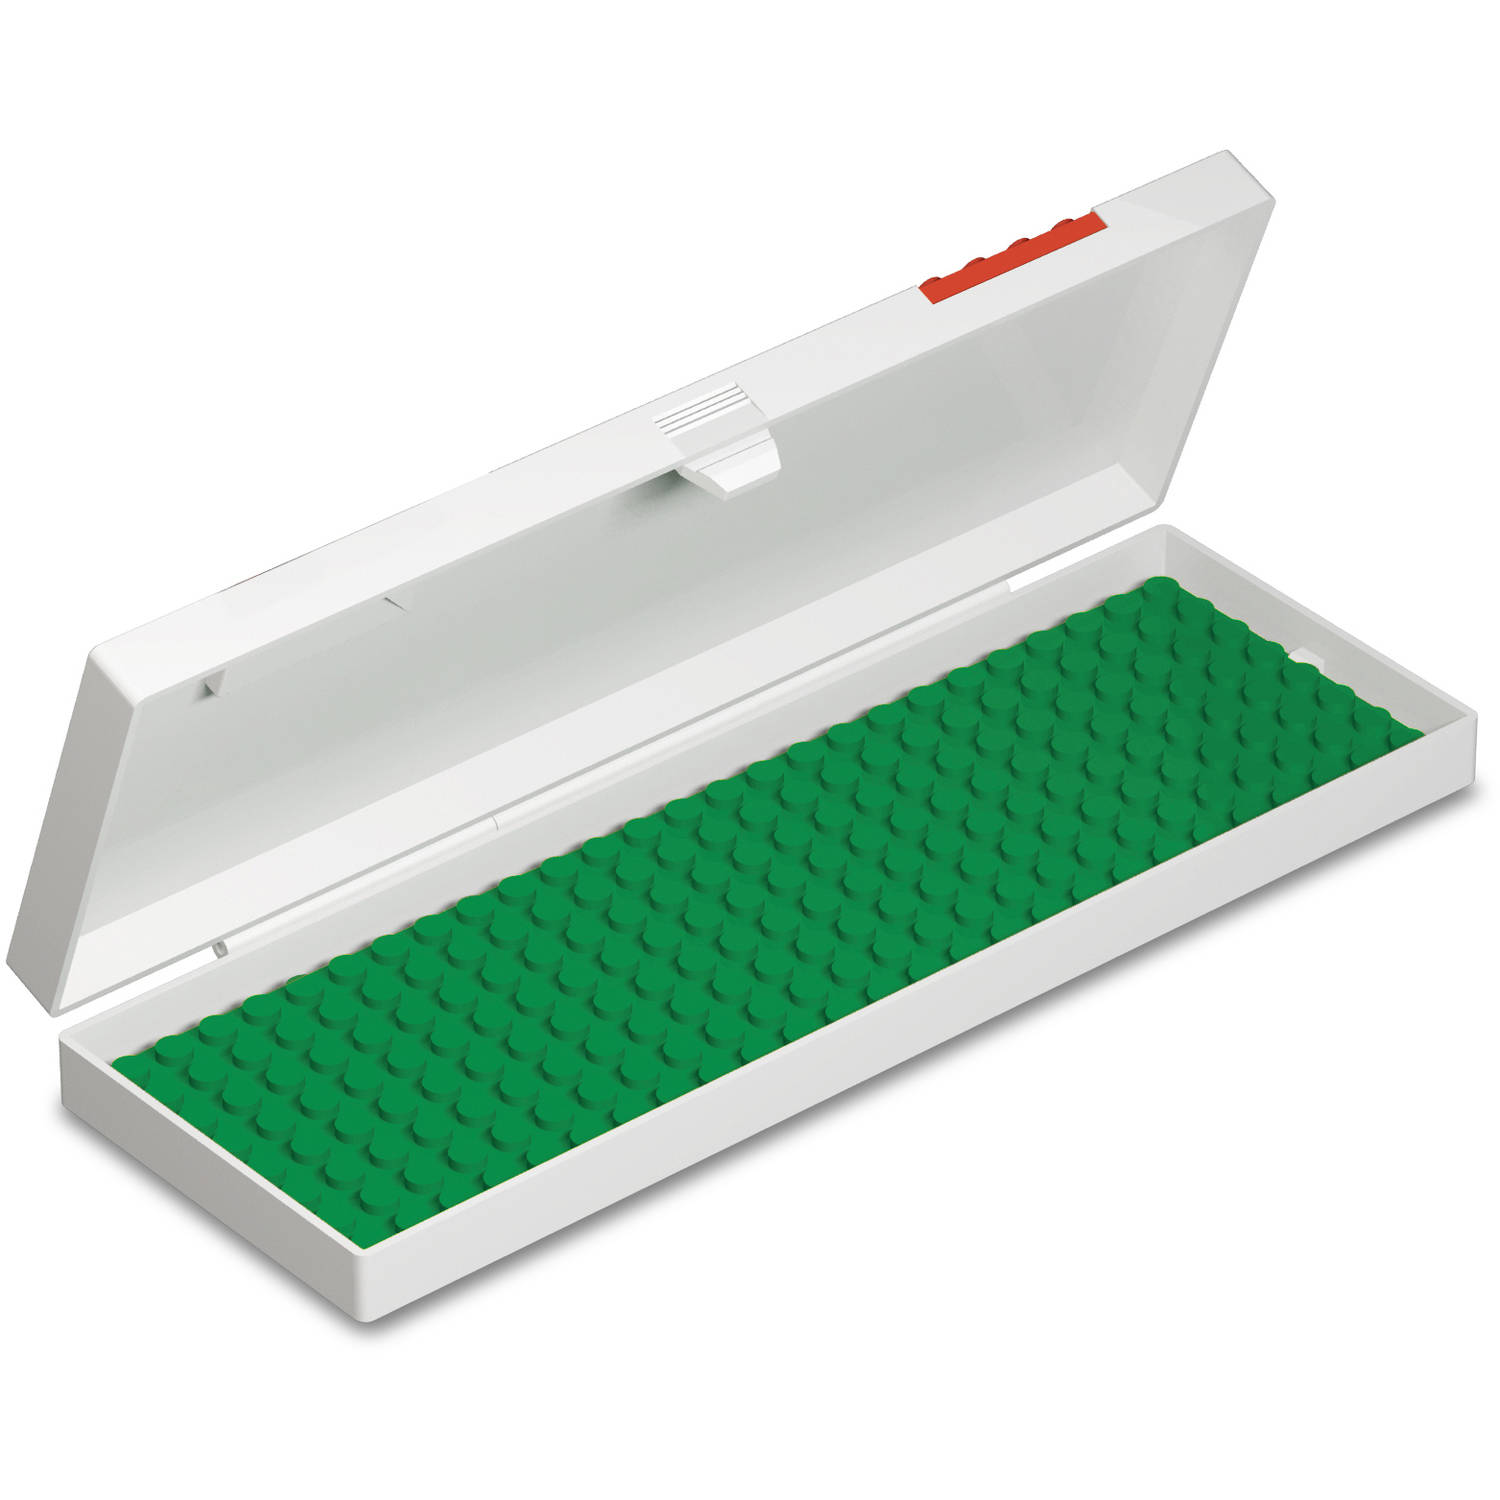 Pencil Case - Lego - Hard Shell - Red